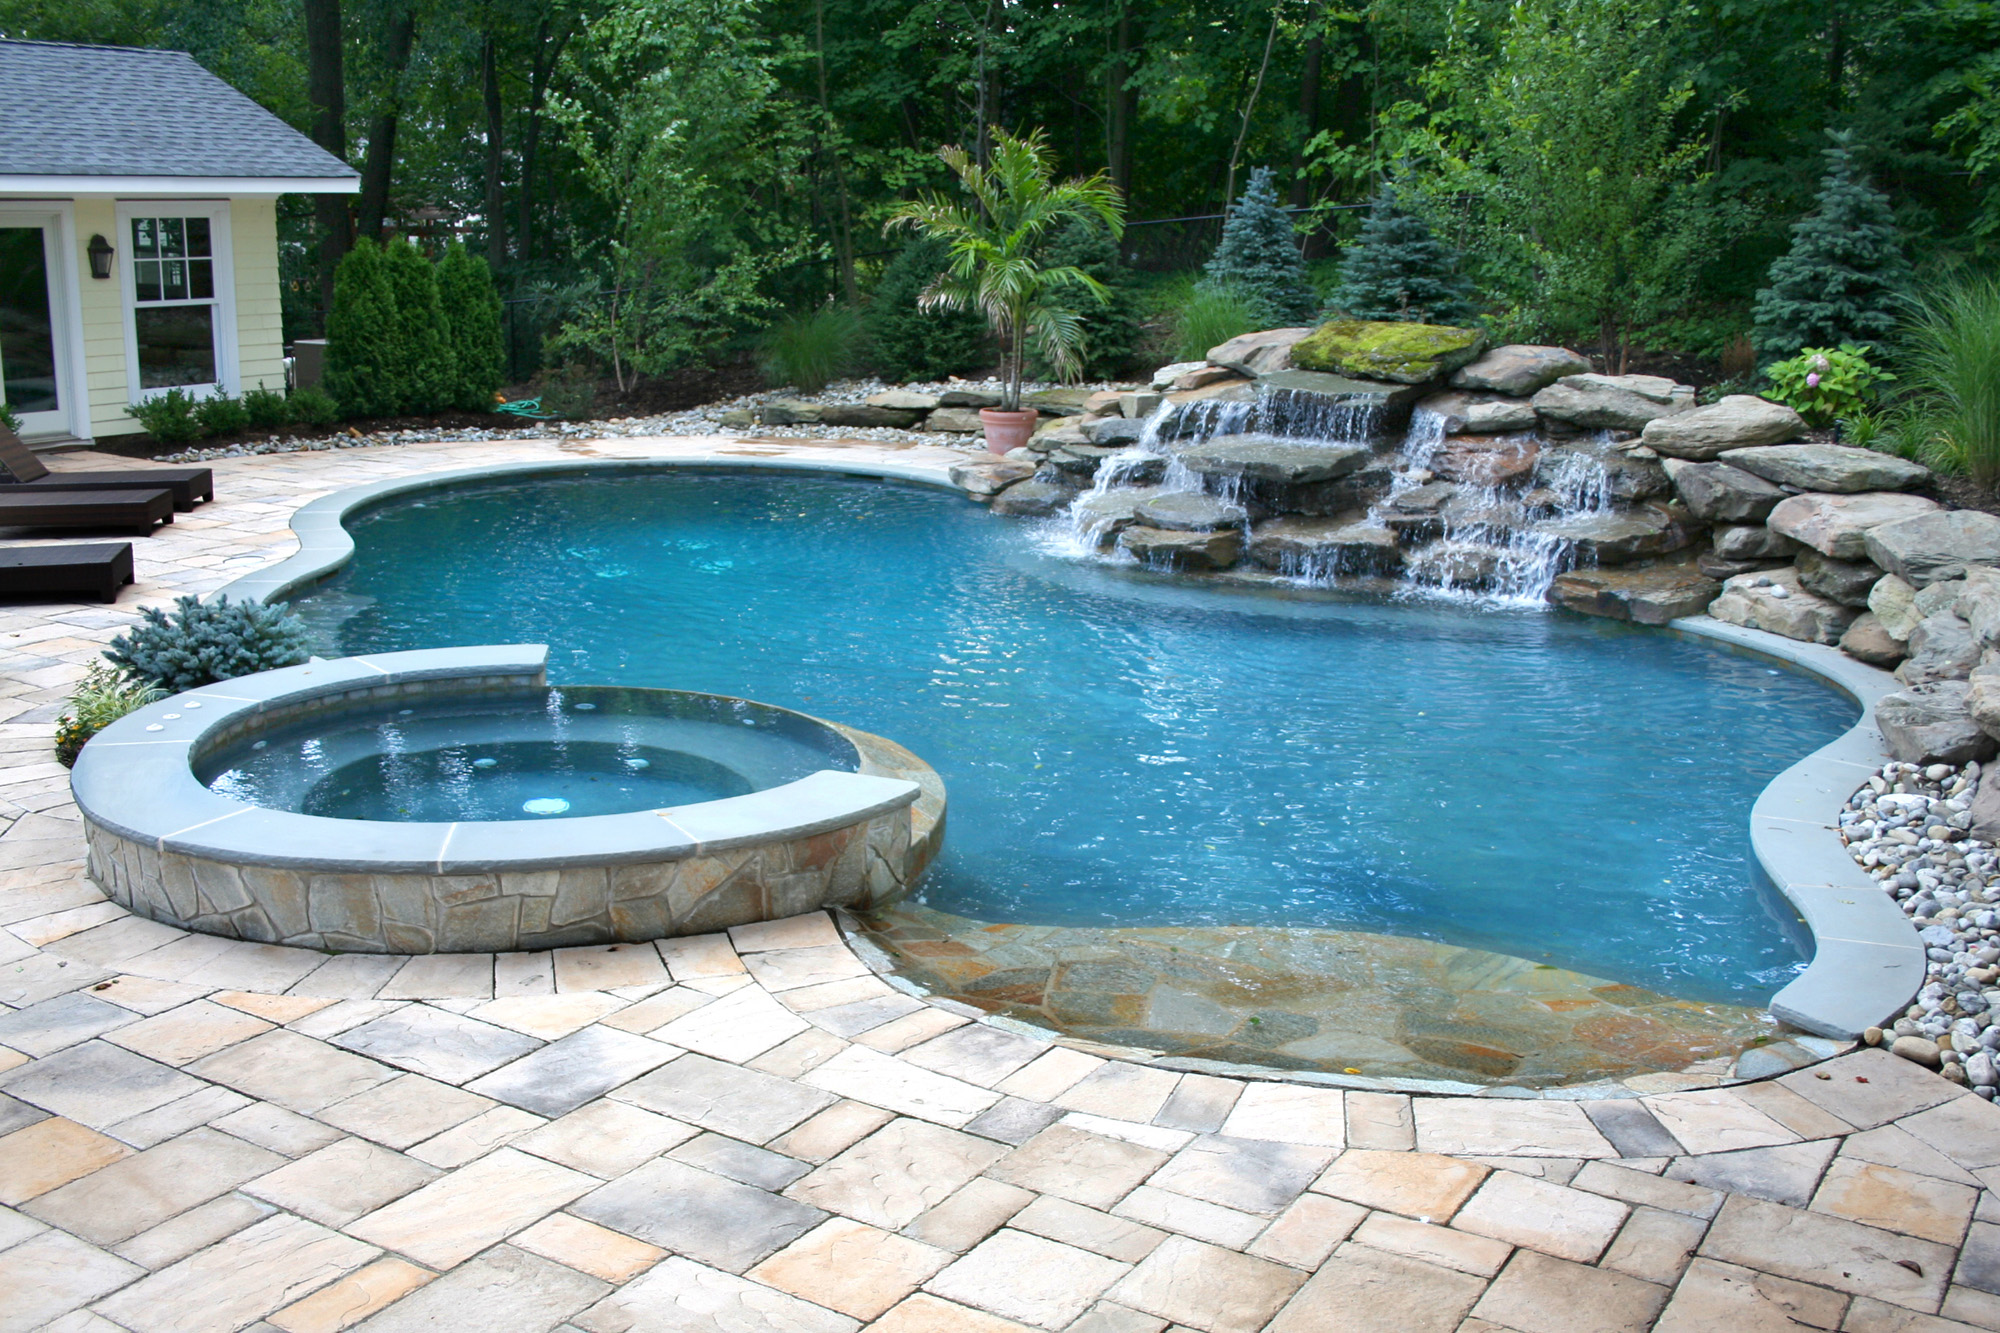 Masterson Pools Inground Swimming Pools Nj Masterson